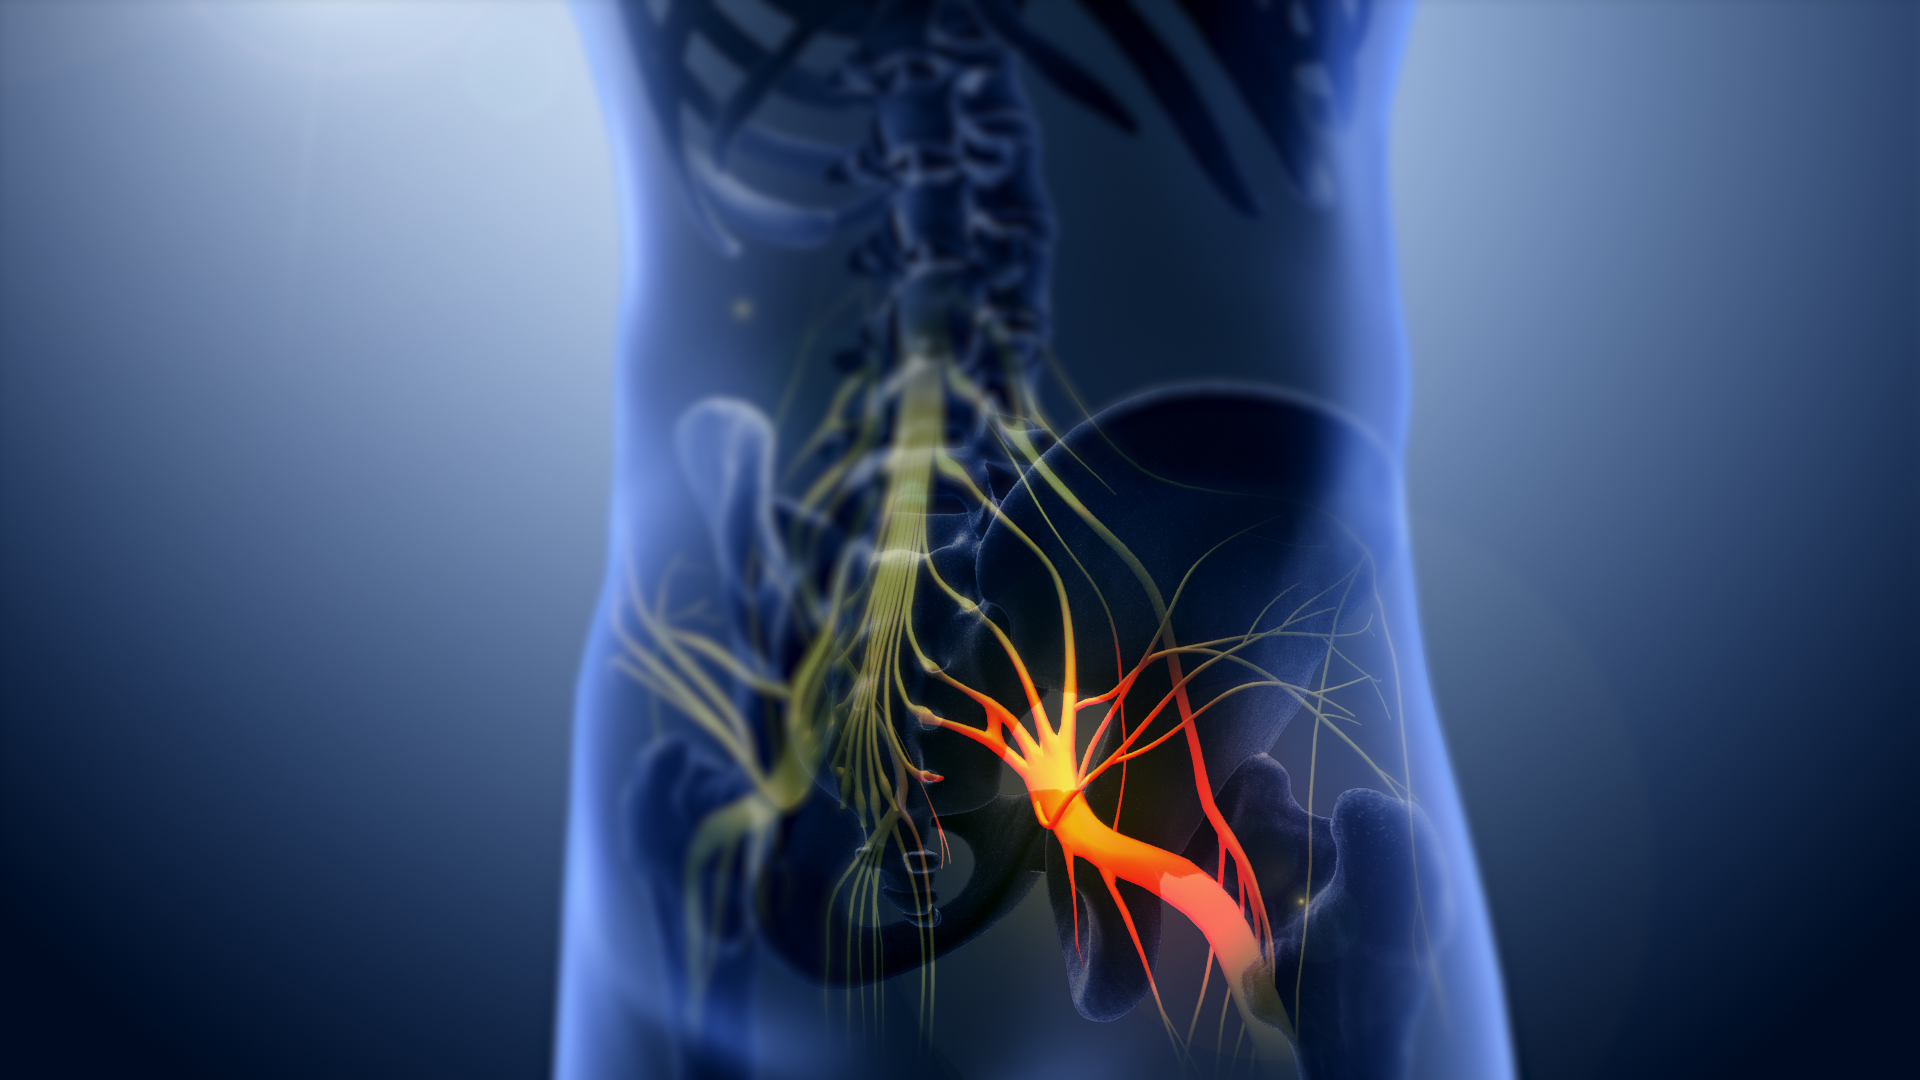 File:3D still showing Sciatica nerve.jpg - Wikipedia